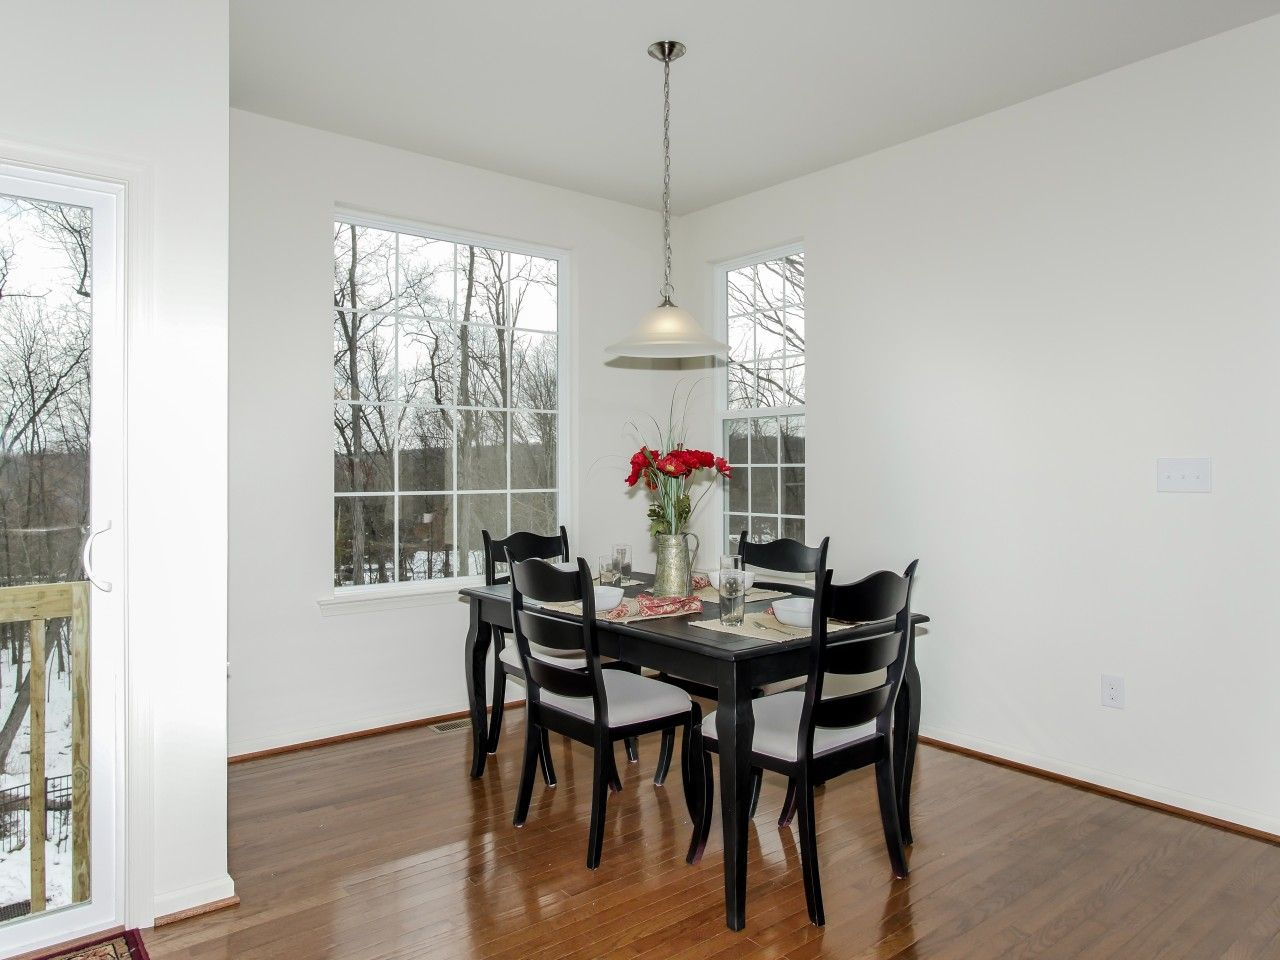 Kitchen featured in the Newhaven-On Your Land-Lot By Sal Lapio Homes in Philadelphia, PA